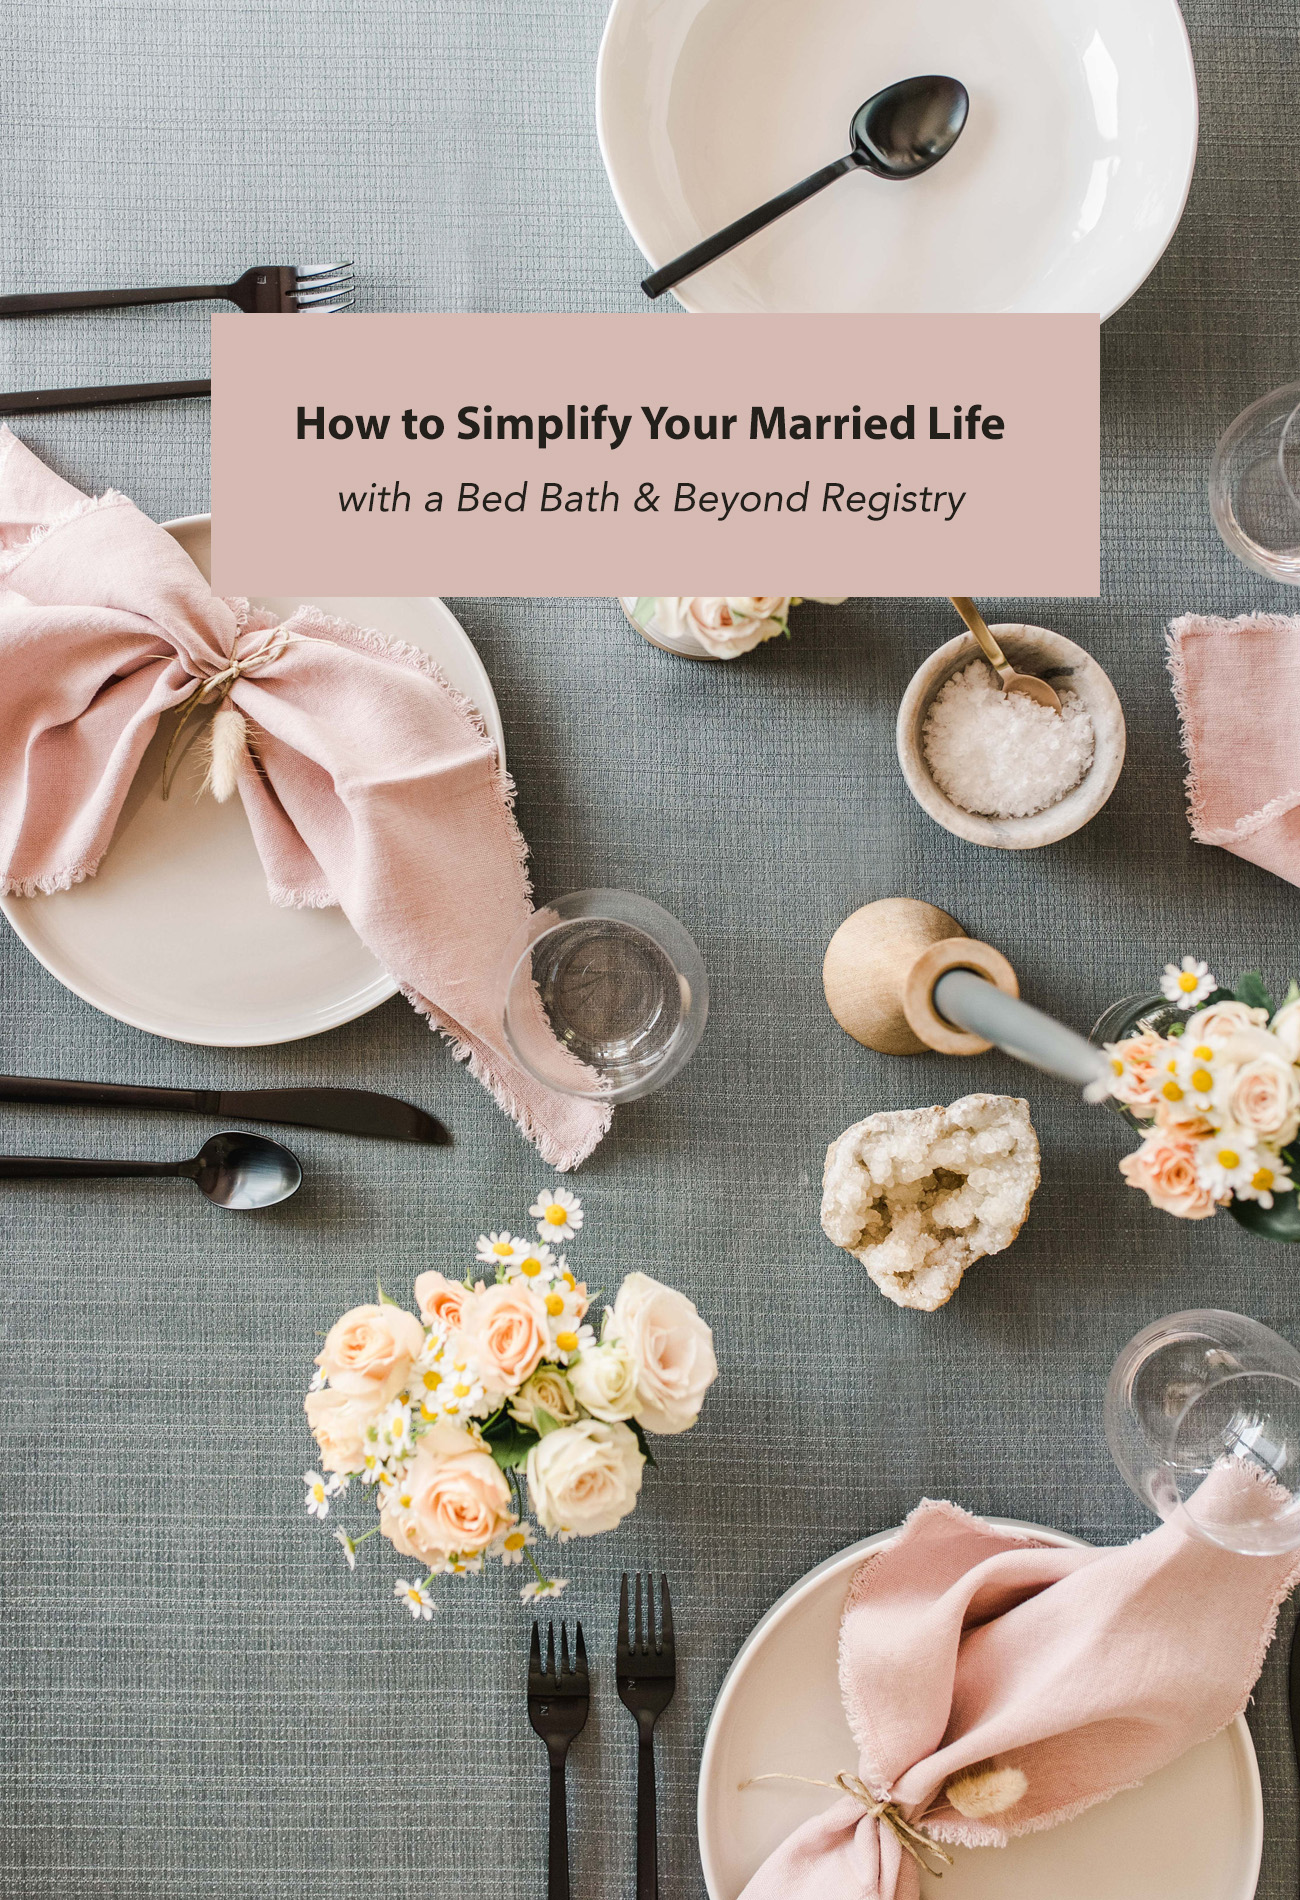 How to Simplify Your Married Life with a Bed Bath & Beyond Registry